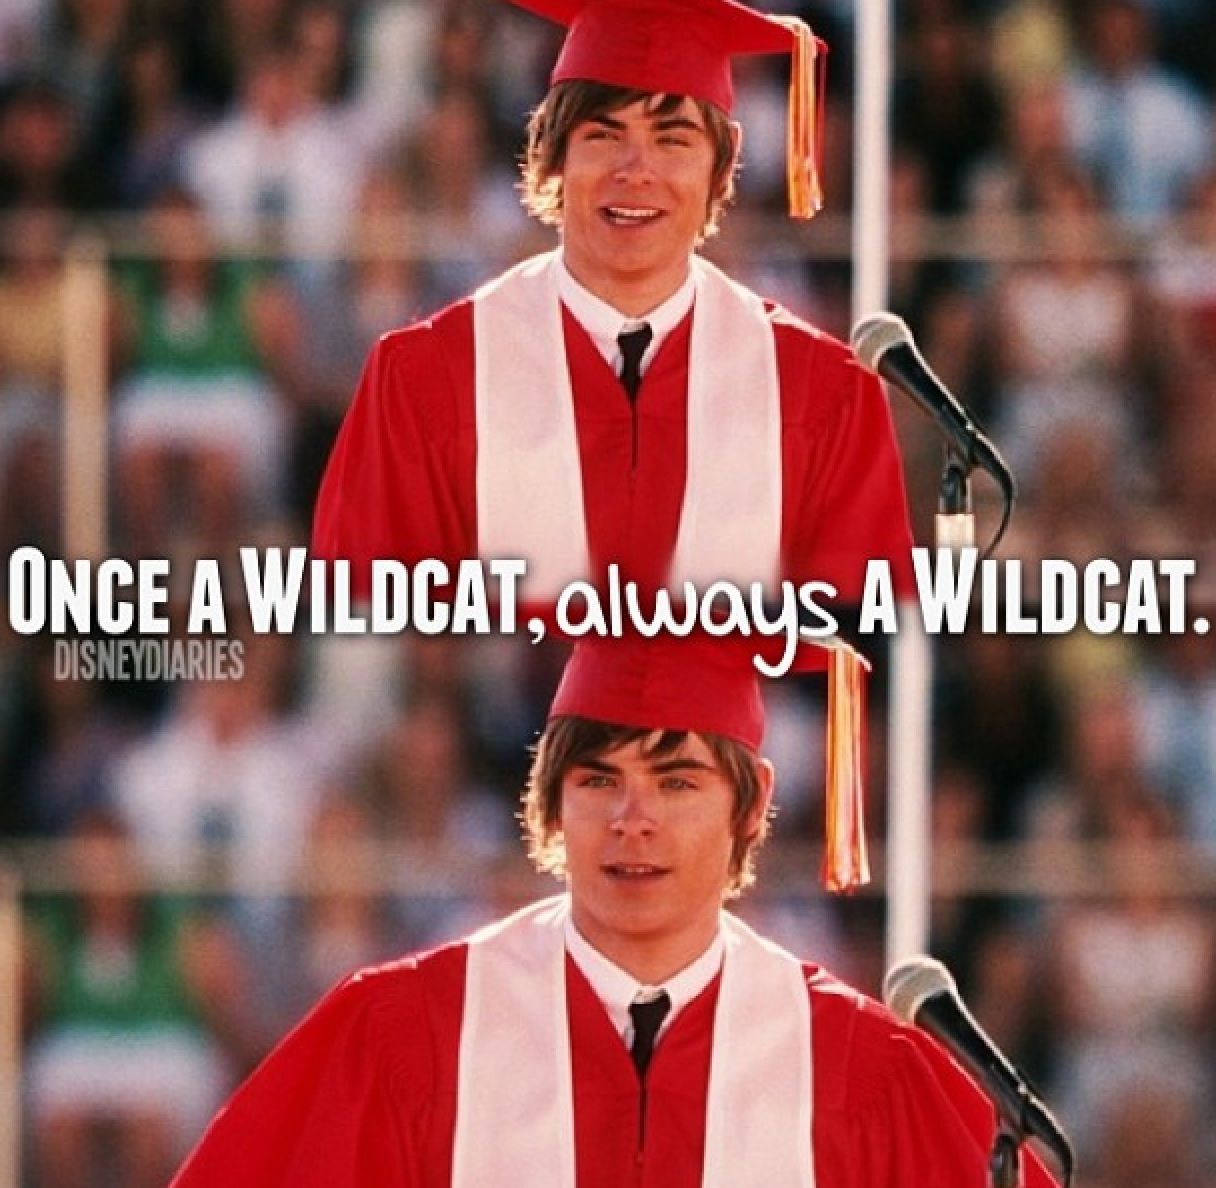 graduation speech hsm3